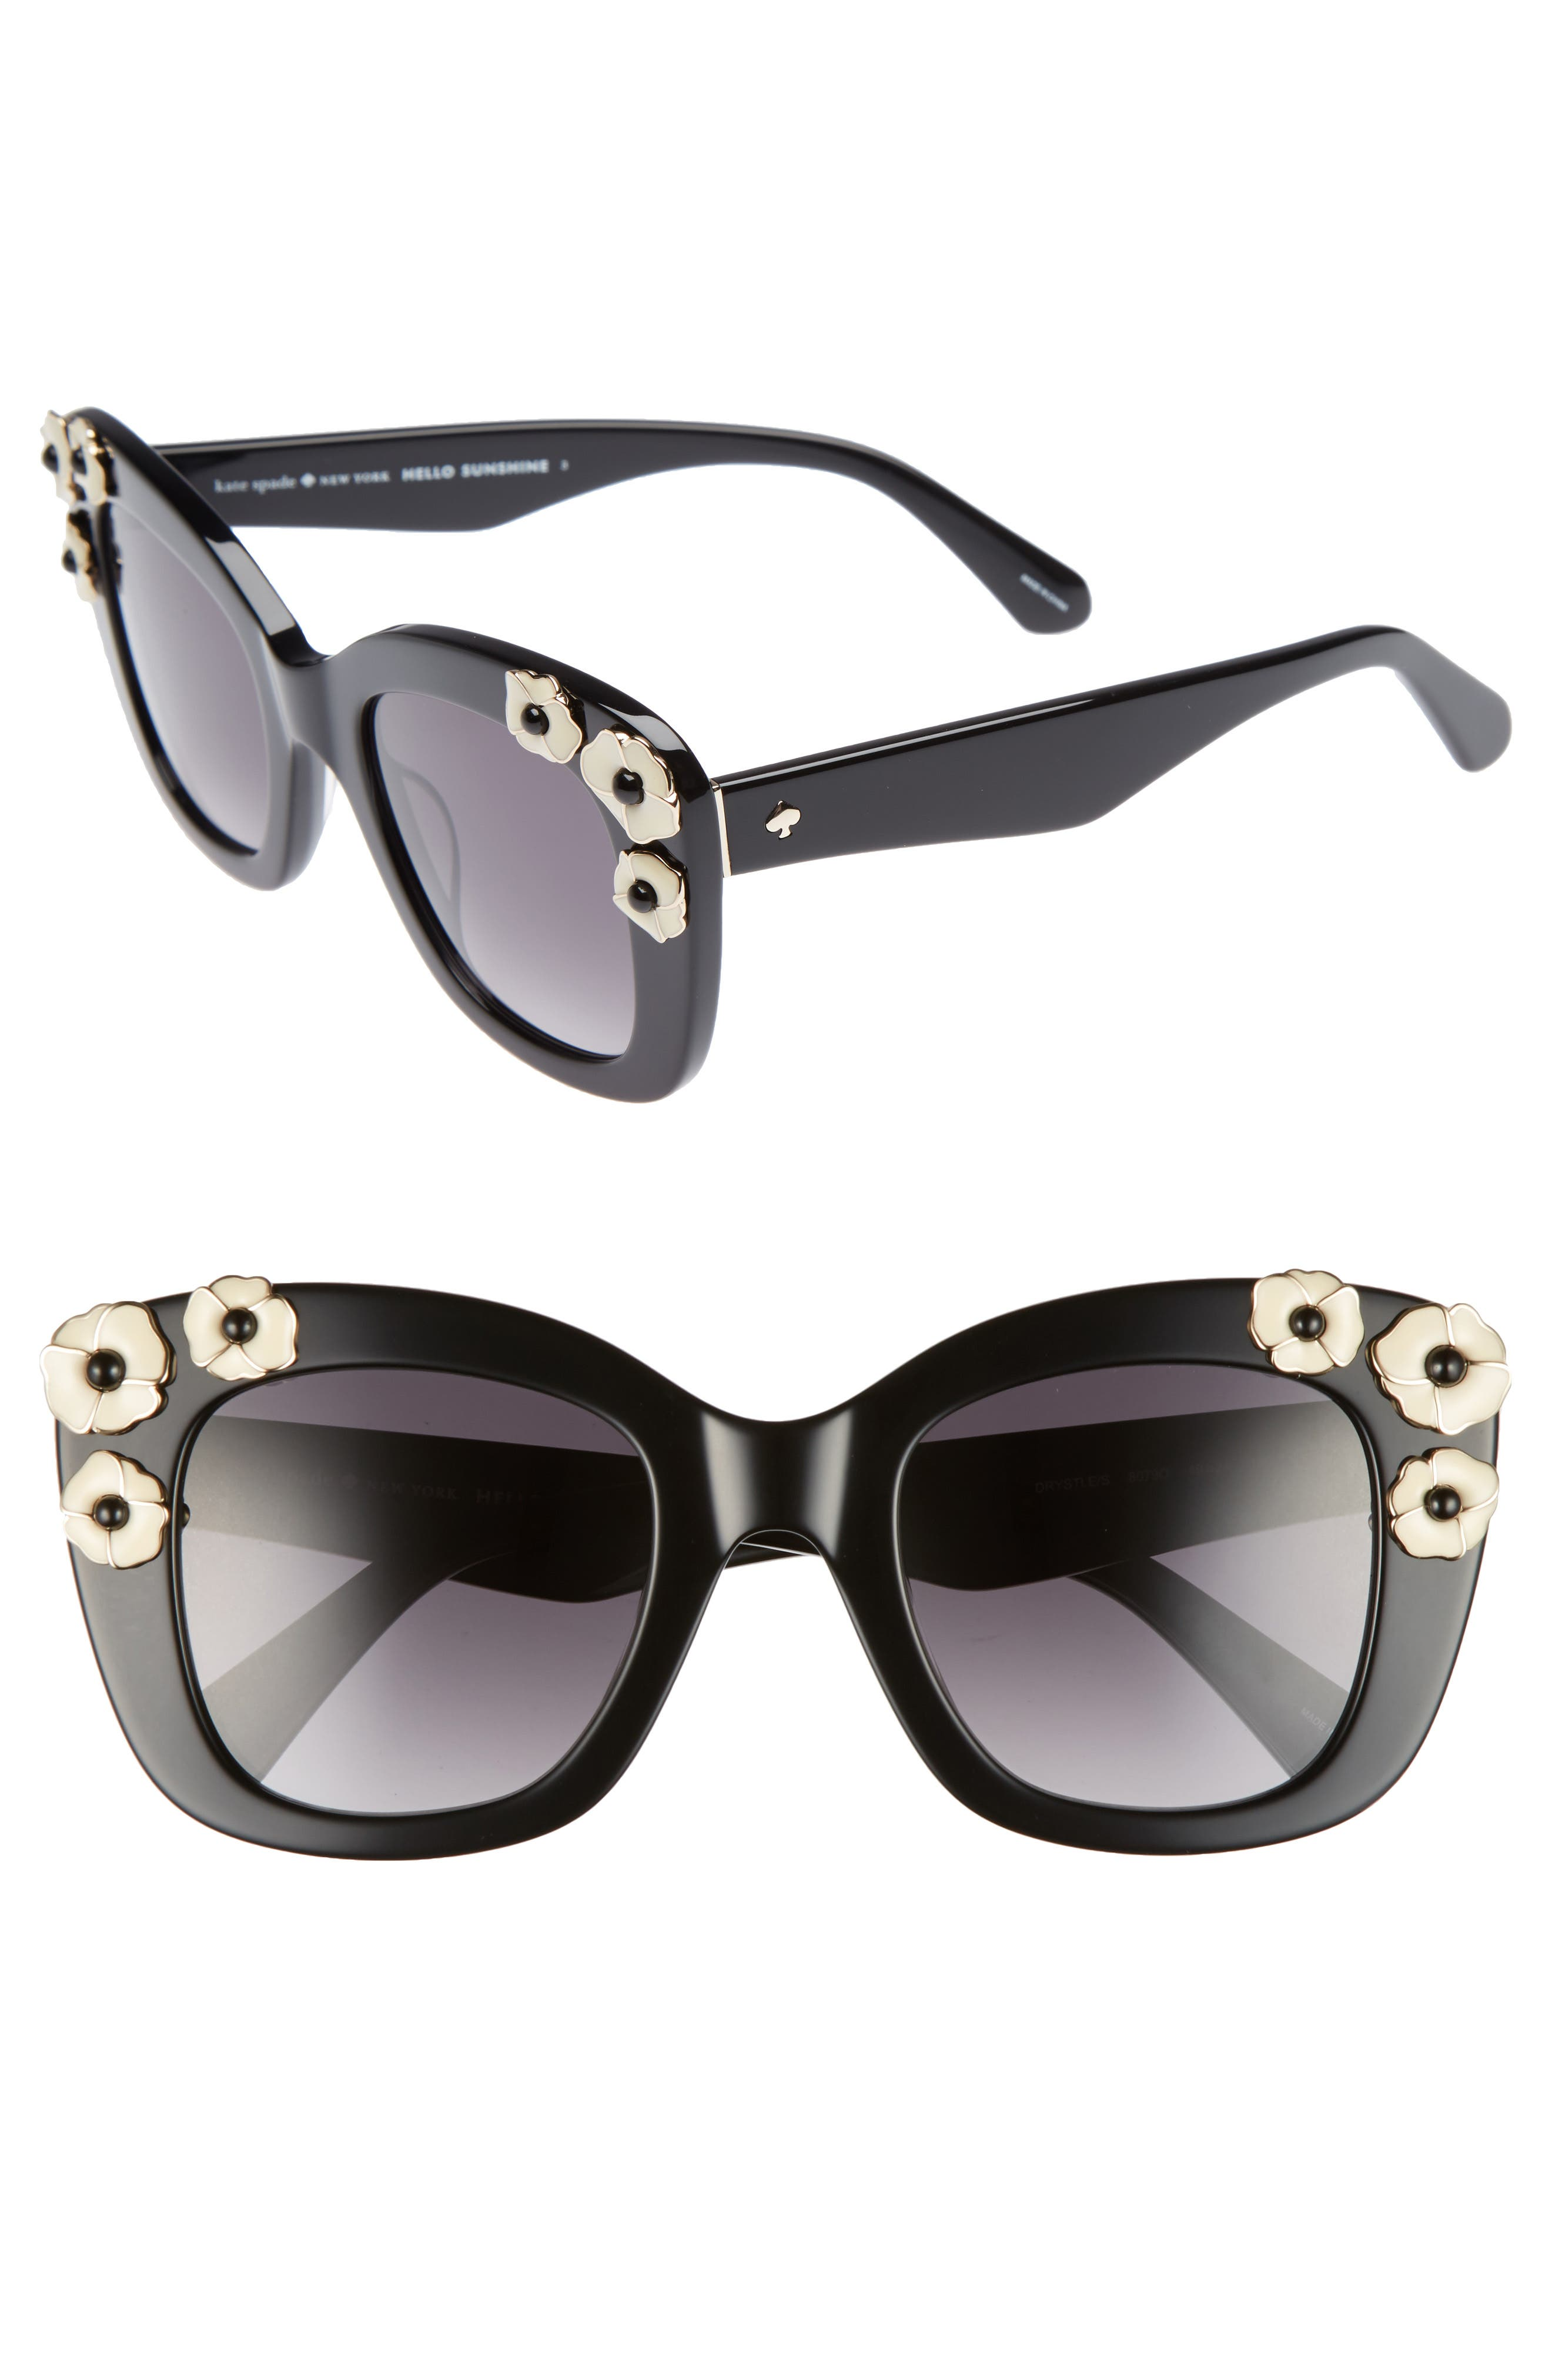 kate spade drystle 49mm floral embellished square sunglasses,                             Main thumbnail 1, color,